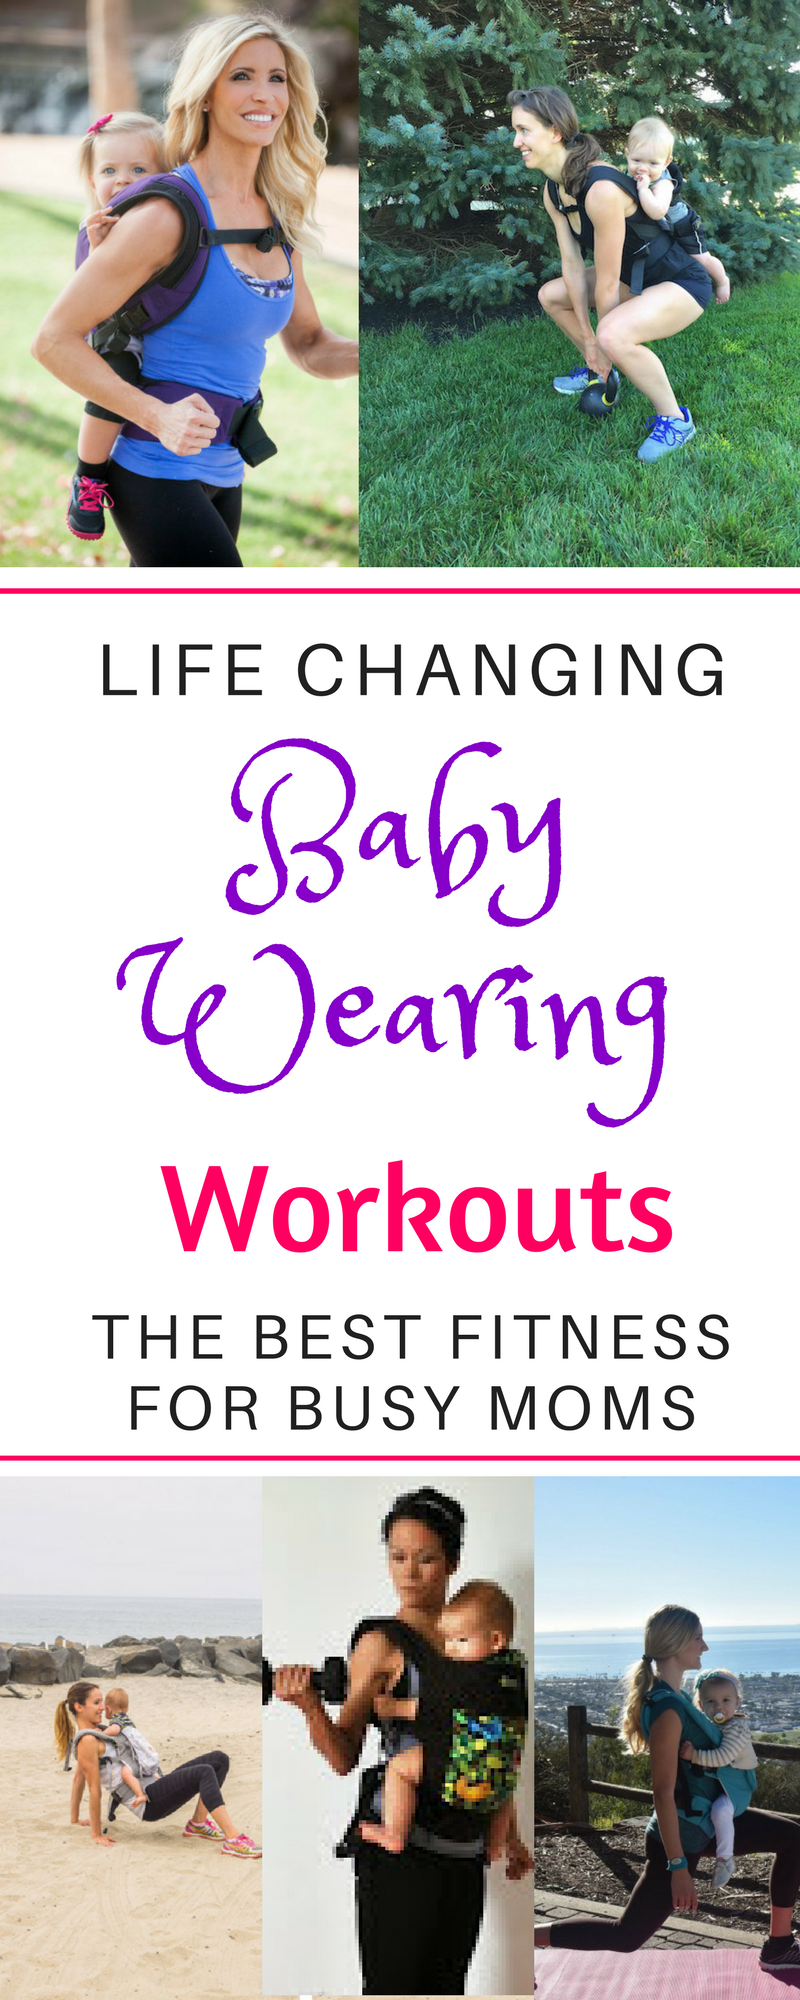 A babywearing workout is the perfect way for mom to exercise post pregnancy and stay fit Baby wearing work outs are the perfect way to lose weight post partum for new mom...